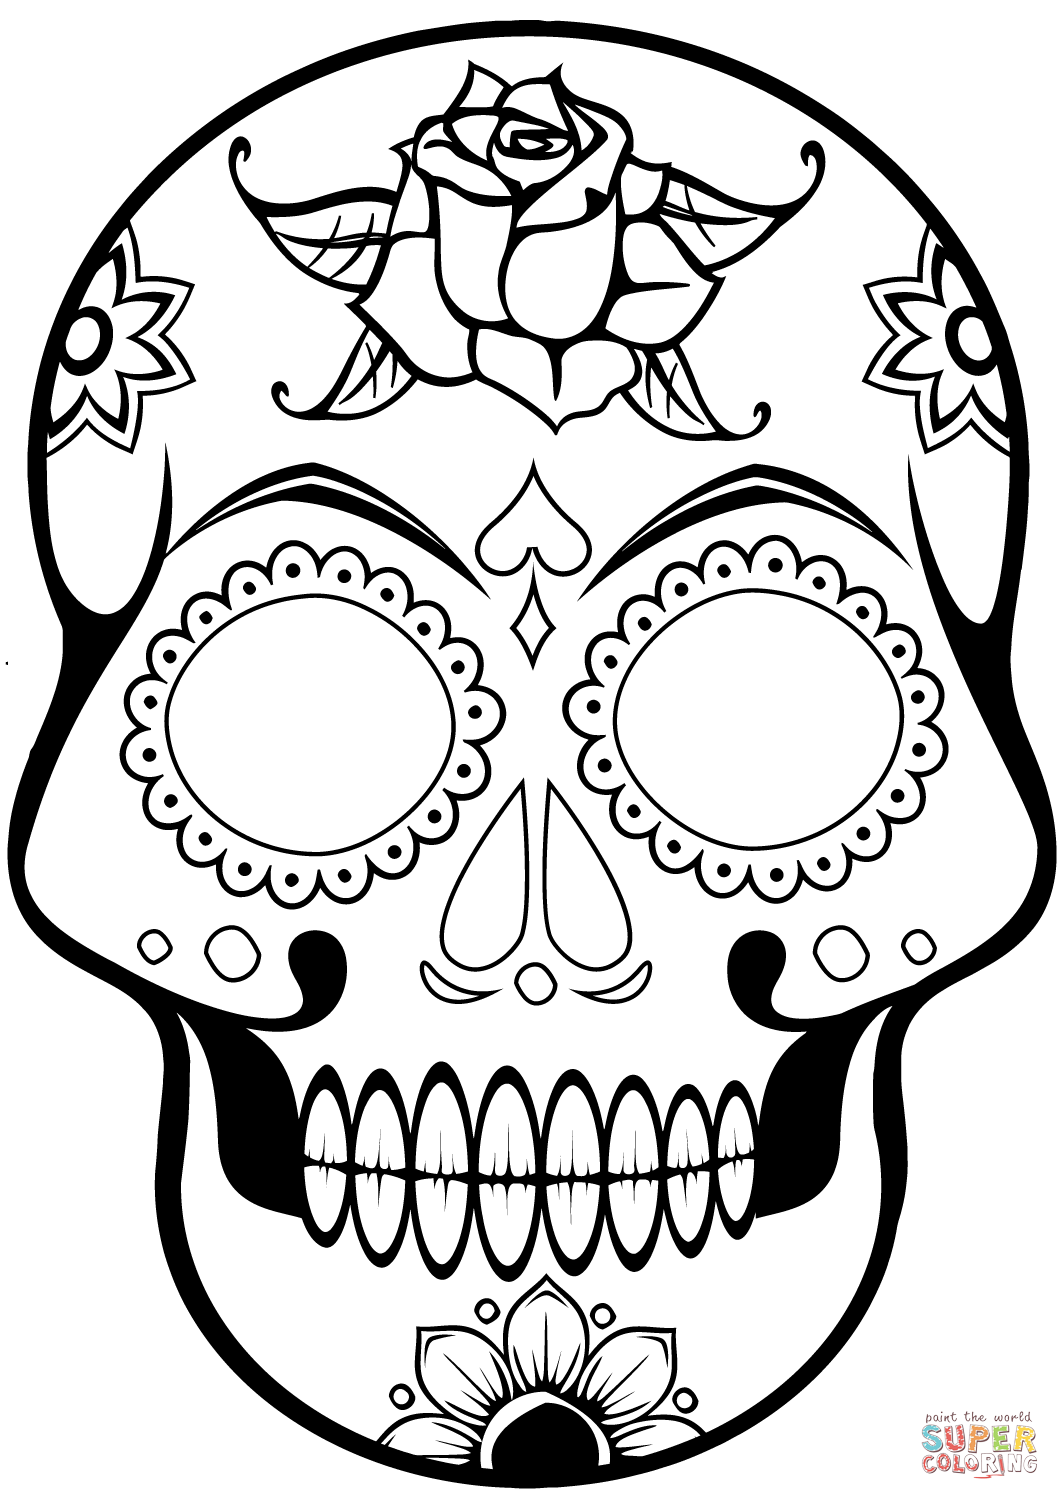 sugar skull coloring pages free stormtrooper sugar skull coloring pages coloring pages sugar free coloring pages skull